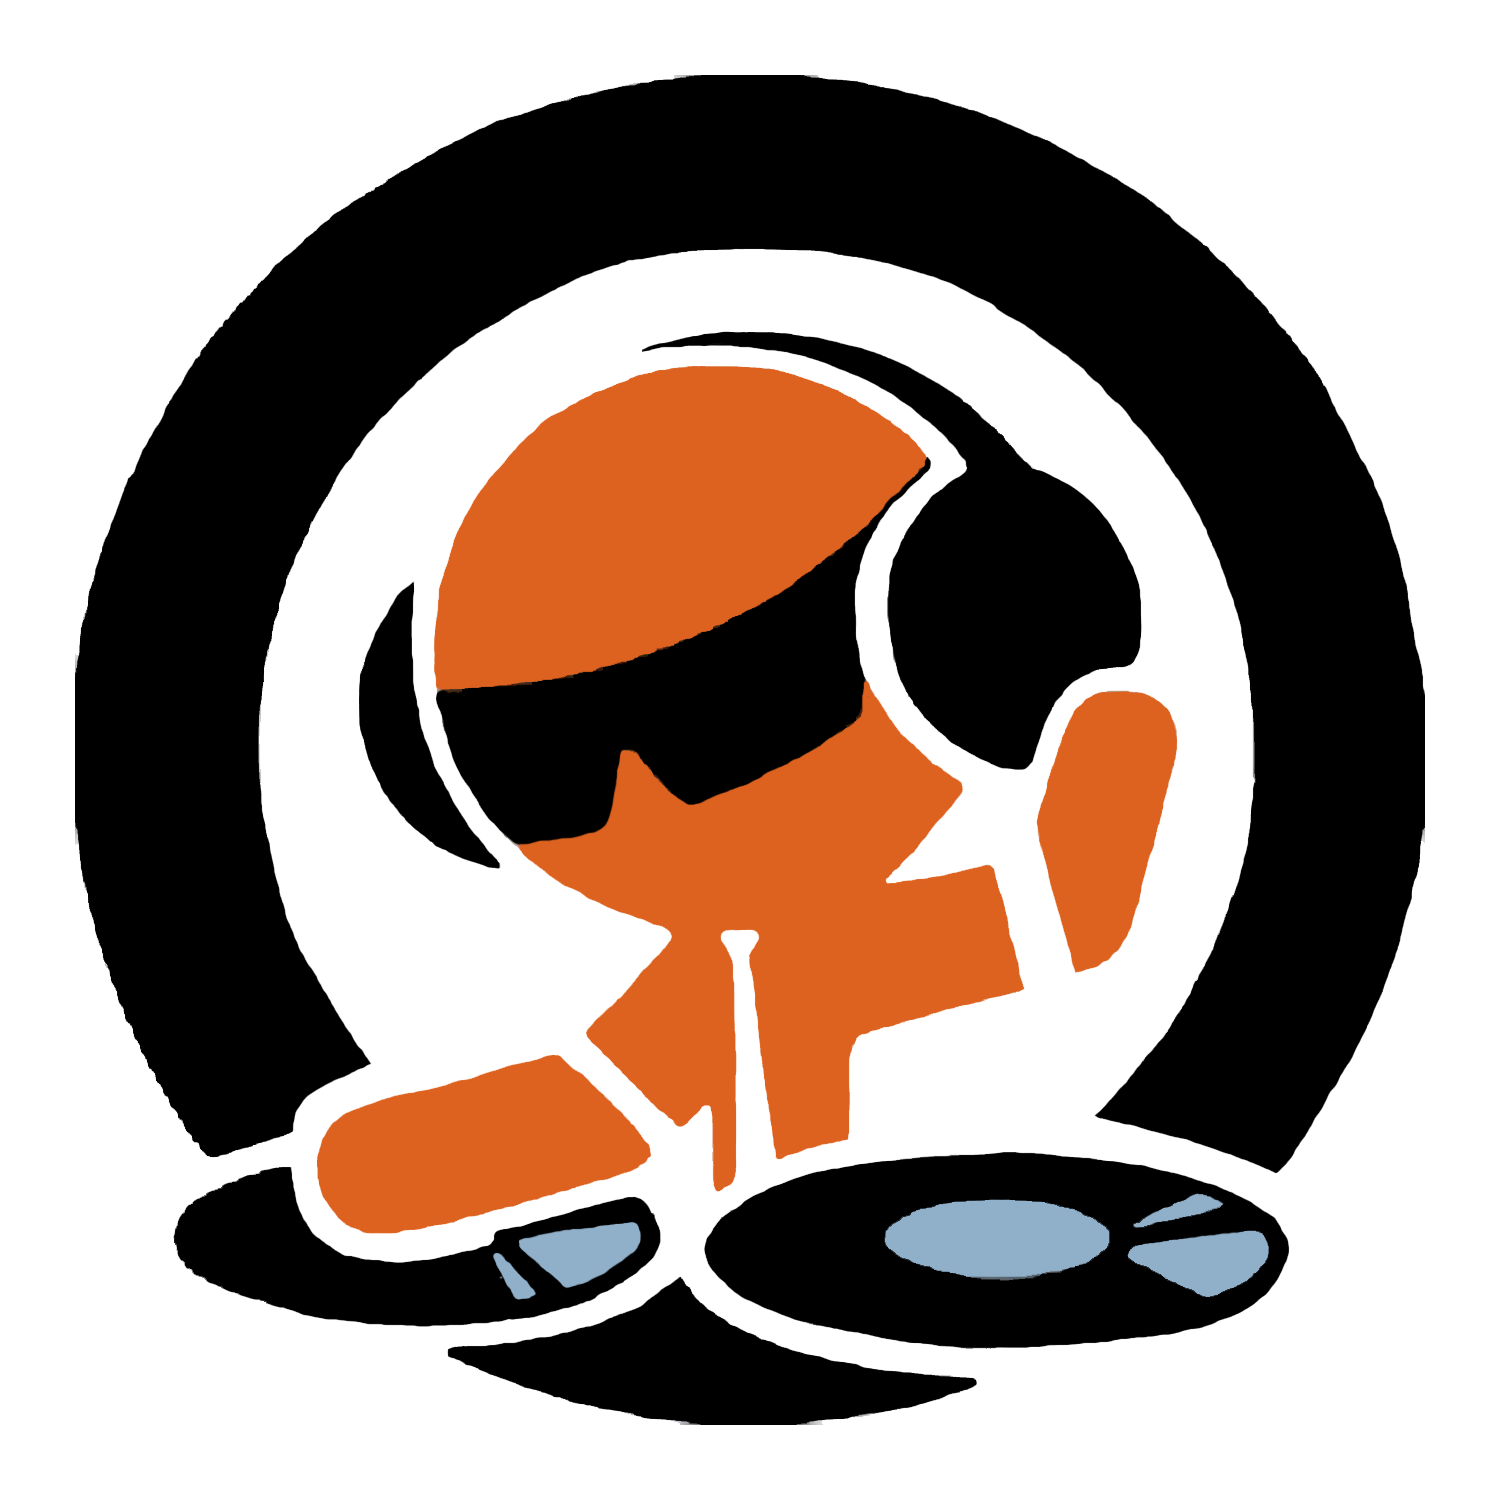 Dj clipart pa system. Our packages bdj services